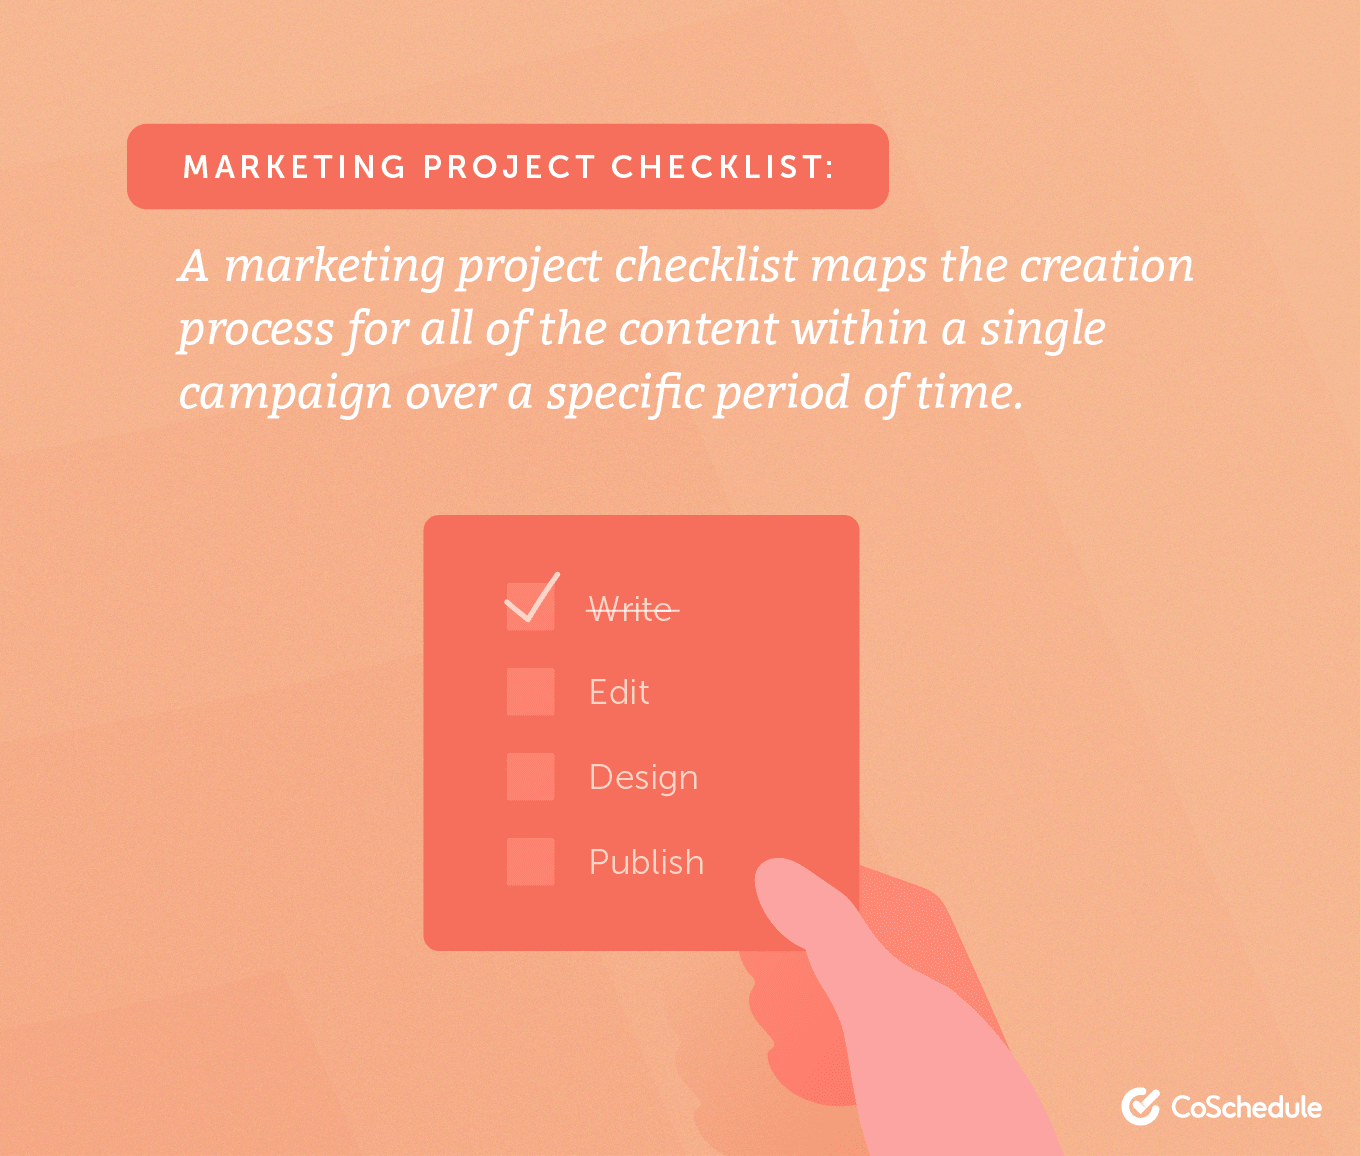 What is a marketing project checklist?